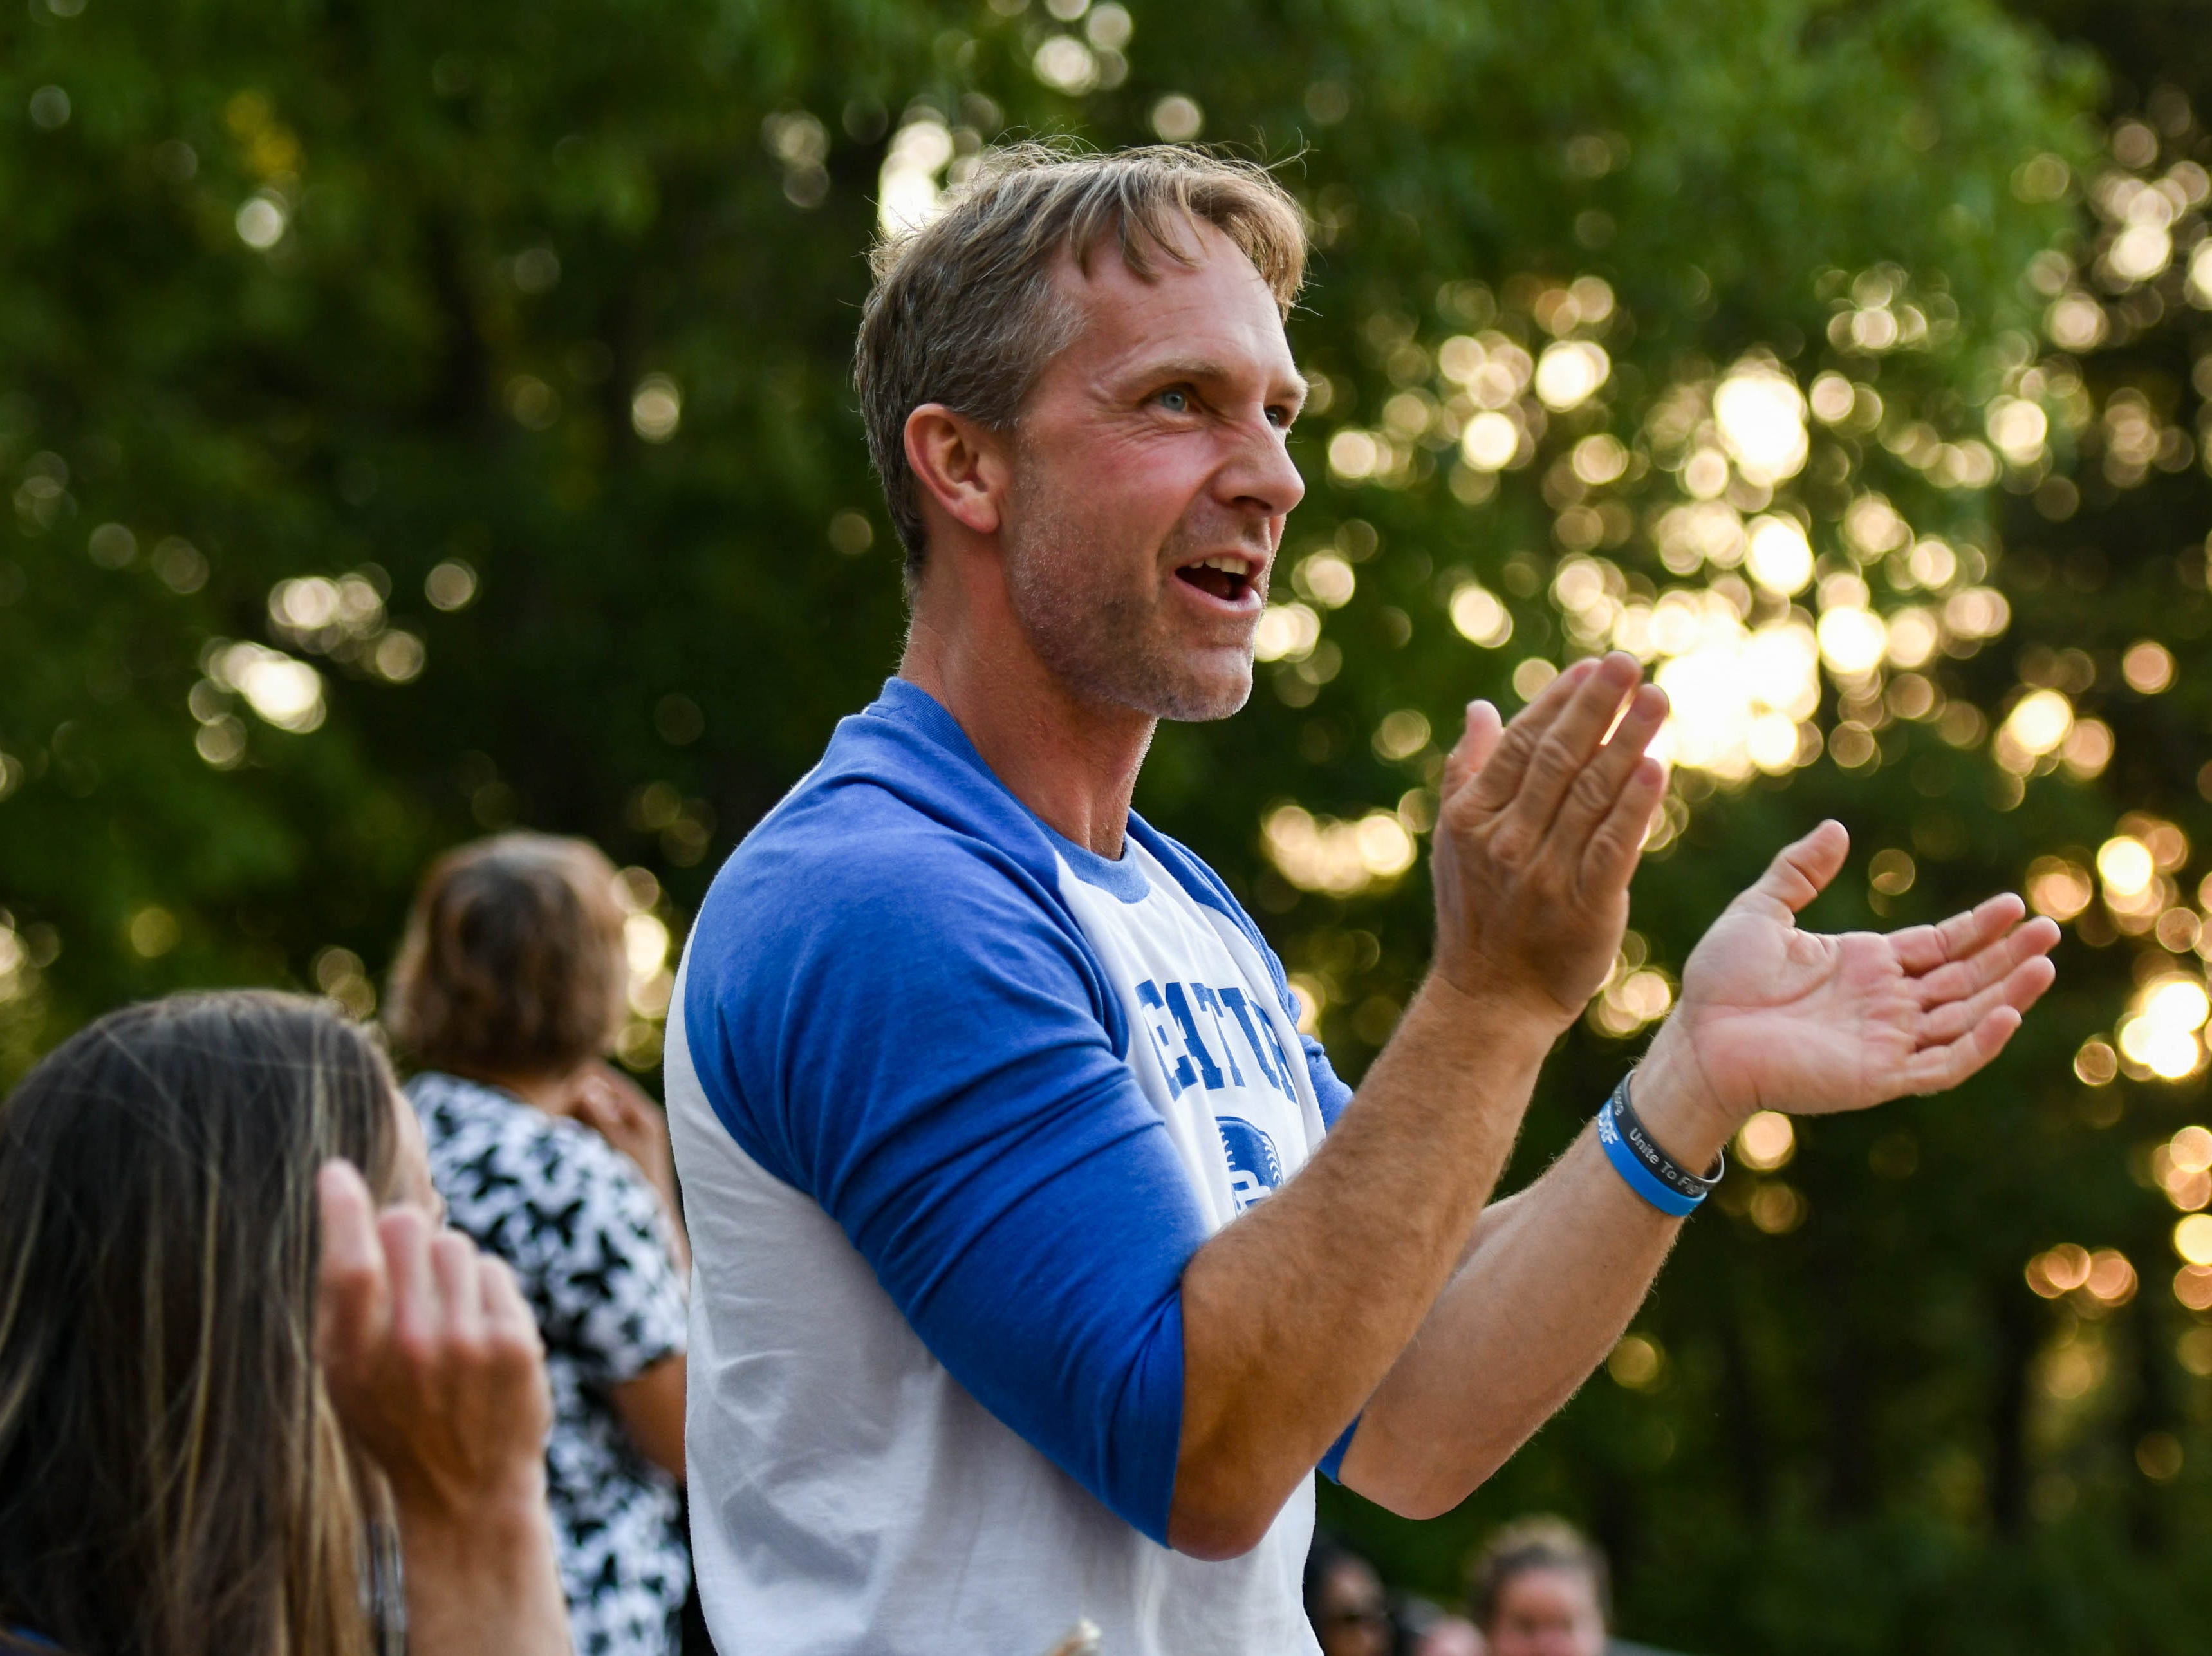 Stan Griffin cheers for his daughter's team, Stephen Decatur High School, in the Bayside Softball Championship game against Colonel Richardson on Wednesday, May 8, 2019. Decatur prevailed with a score of 4 to 1.